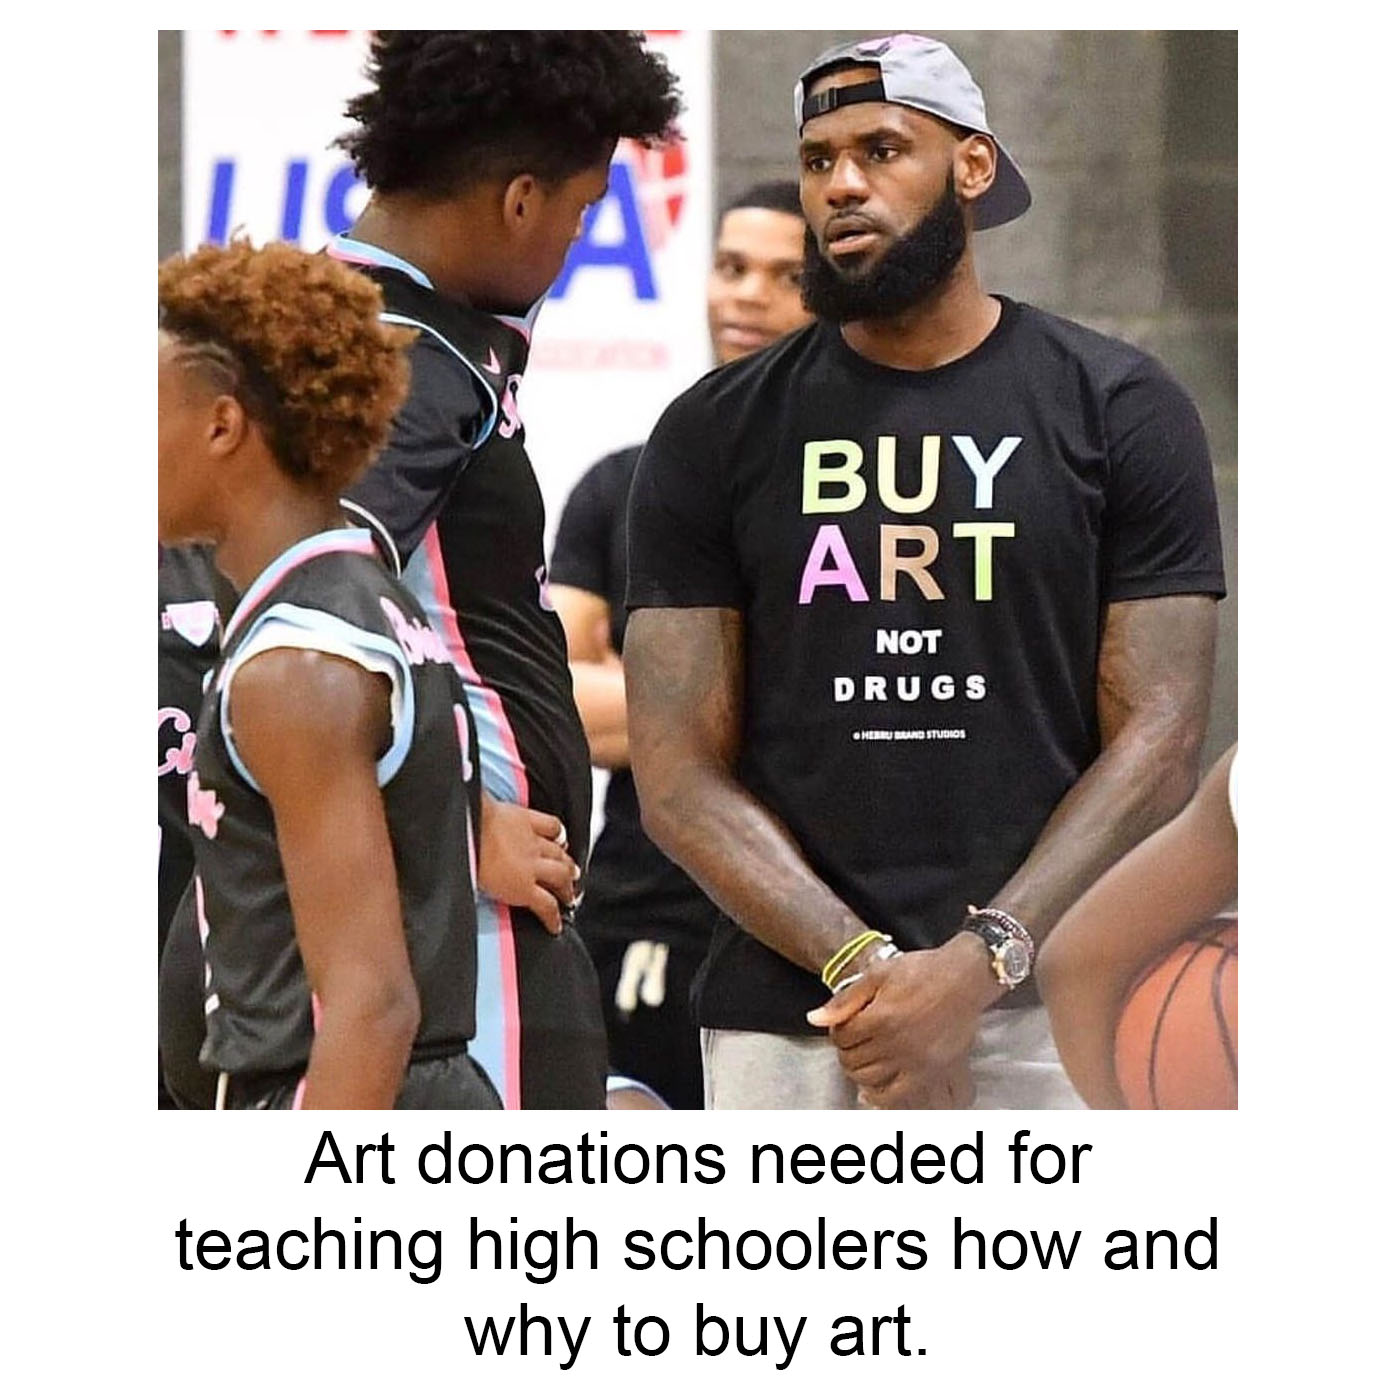 "- justinwheatleyartI want my high school students to have an opportunity to purchase original art. One of my goals as an art teacher is to educate my students on the joy that can be found in having art in their home. Fellow teacher,@clint_whiting, and I are going to hold our first ever ""Buy Art, Not Drugs"" fair to provide students with an opportunity to spend a few dollars on an original work of art. Students will be encouraged to skip something for a day or two and use the money they saved to purchase art that they can enjoy for a much longer time. Instead of a bag of Cheetos, a soda, a coffee, or something else, they can take home a drawing, collage, or some other work of art that they appreciate. As part of the project, we will talk about various celebrity art collectors the students can identify with and why art collecting is important to those people, and how it can add to their own lives.We teach at a public alternative high school and much of our student population is on free or reduced lunch. Money is tight. In order to make this work, art works will be priced from $2-$10. 100% of proceeds will go to programs that provide food, supplies, and glasses for our students.I don't like asking for donations. I understand the work that goes into creating art. Instead of asking for completed paintings or drawings that you have spent hours on, please consider a quick study, drawing, collage, maquette, or other work that is simple but still beautiful. The goal is to have work that the students find interesting enough to want to take home. If you do want to send a finished painting, we won't say no. Artwork done by students will also be included in the sale. The works do not need to be signed or associated with you in any way. Please only contribute works that are appropriate for a high school setting. Students will be encouraged to write a thank you and describe why they found joy in your work. If you include your name and address with the artwork, I will send the thank you to you. Please consider taking part in this project and please spread the word. Send donations by mail before March 21st to:Attn: Justin WheatleyConnection High School501 E 3900 SSLC UT 84107"